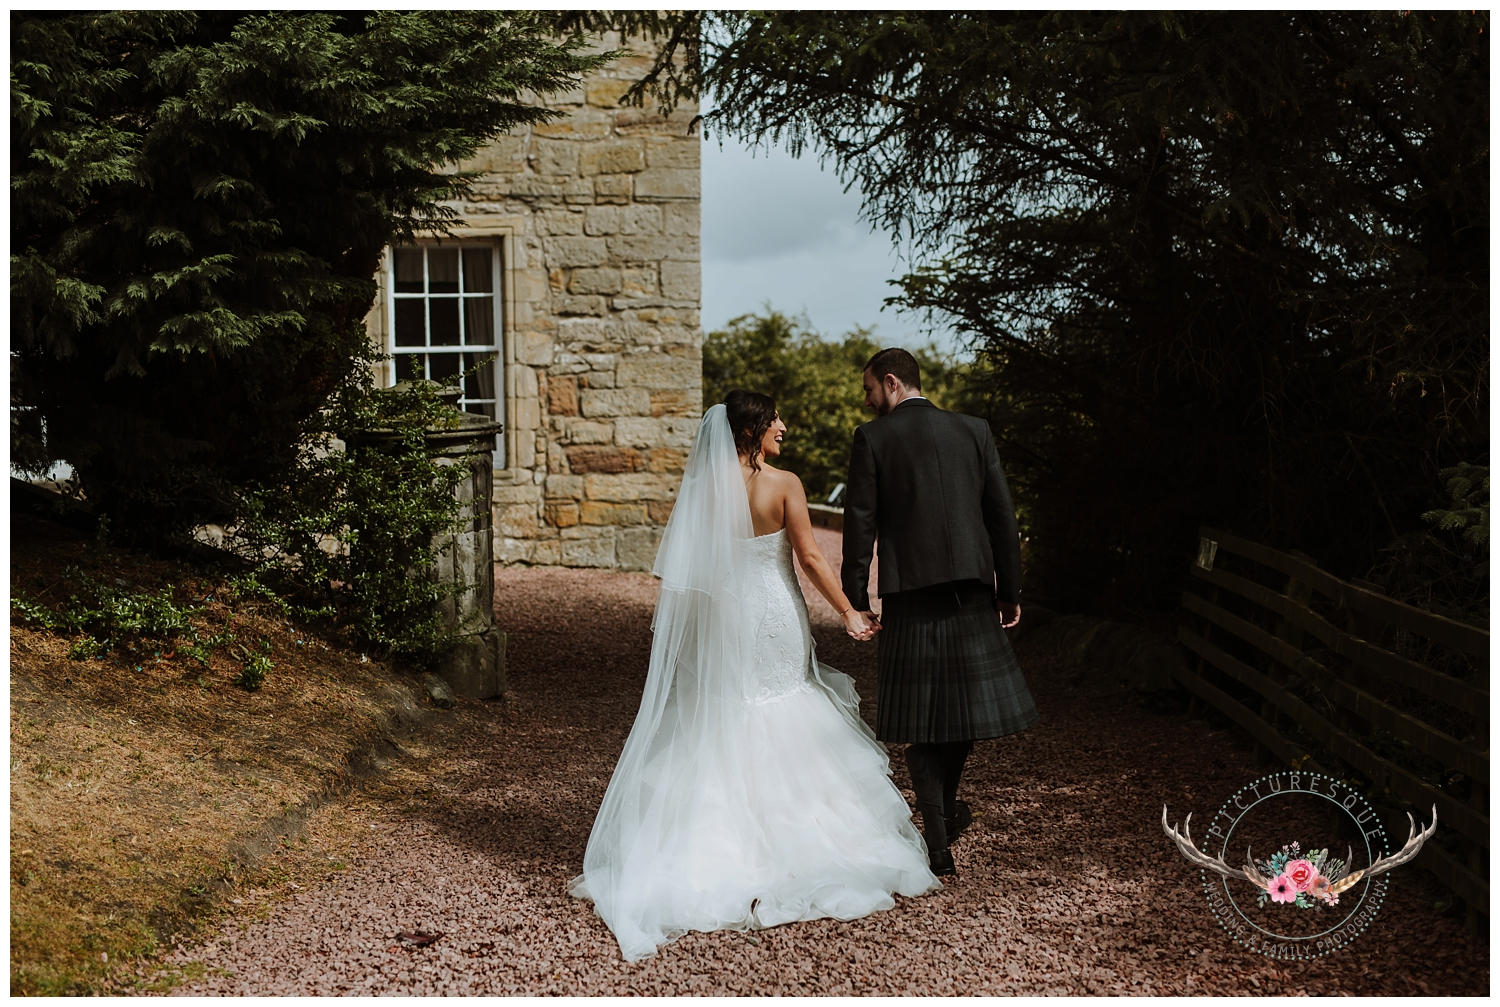 Airth Castle, Scottish wedding, Picturesque, WeddingPhotography, Scotland_0047.jpg